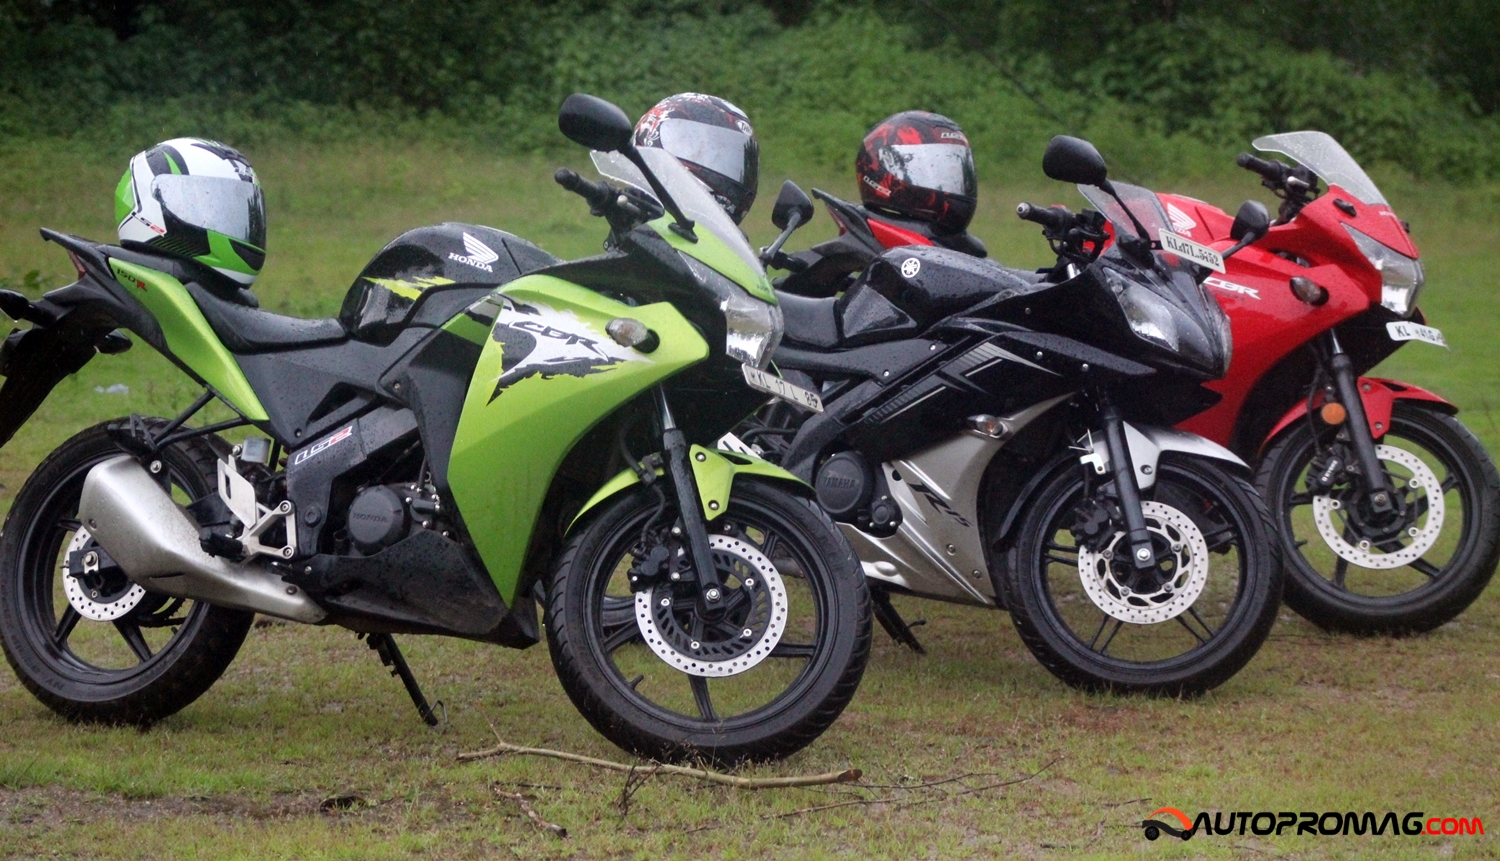 Yamaha R15 V2 Vs Honda Cbr 150r The Ultimate Review Page 2 Of 2